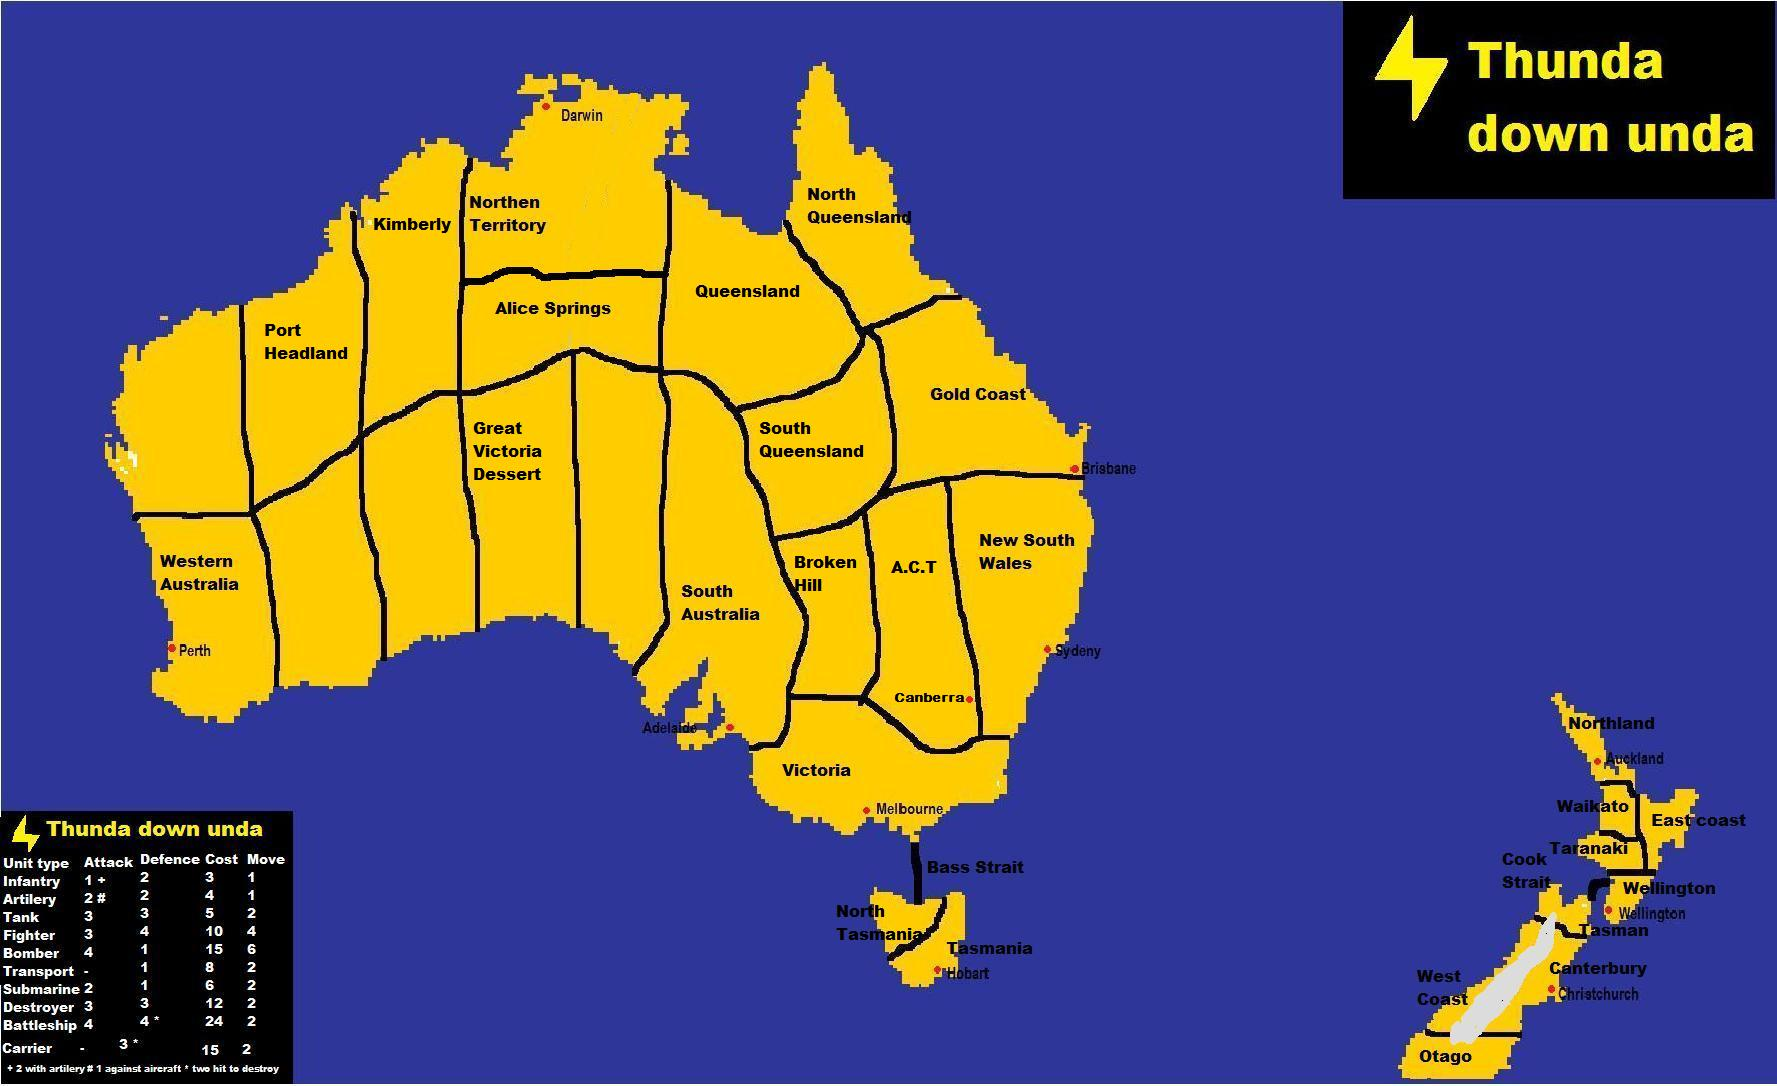 Thunda down under map 6.jpg